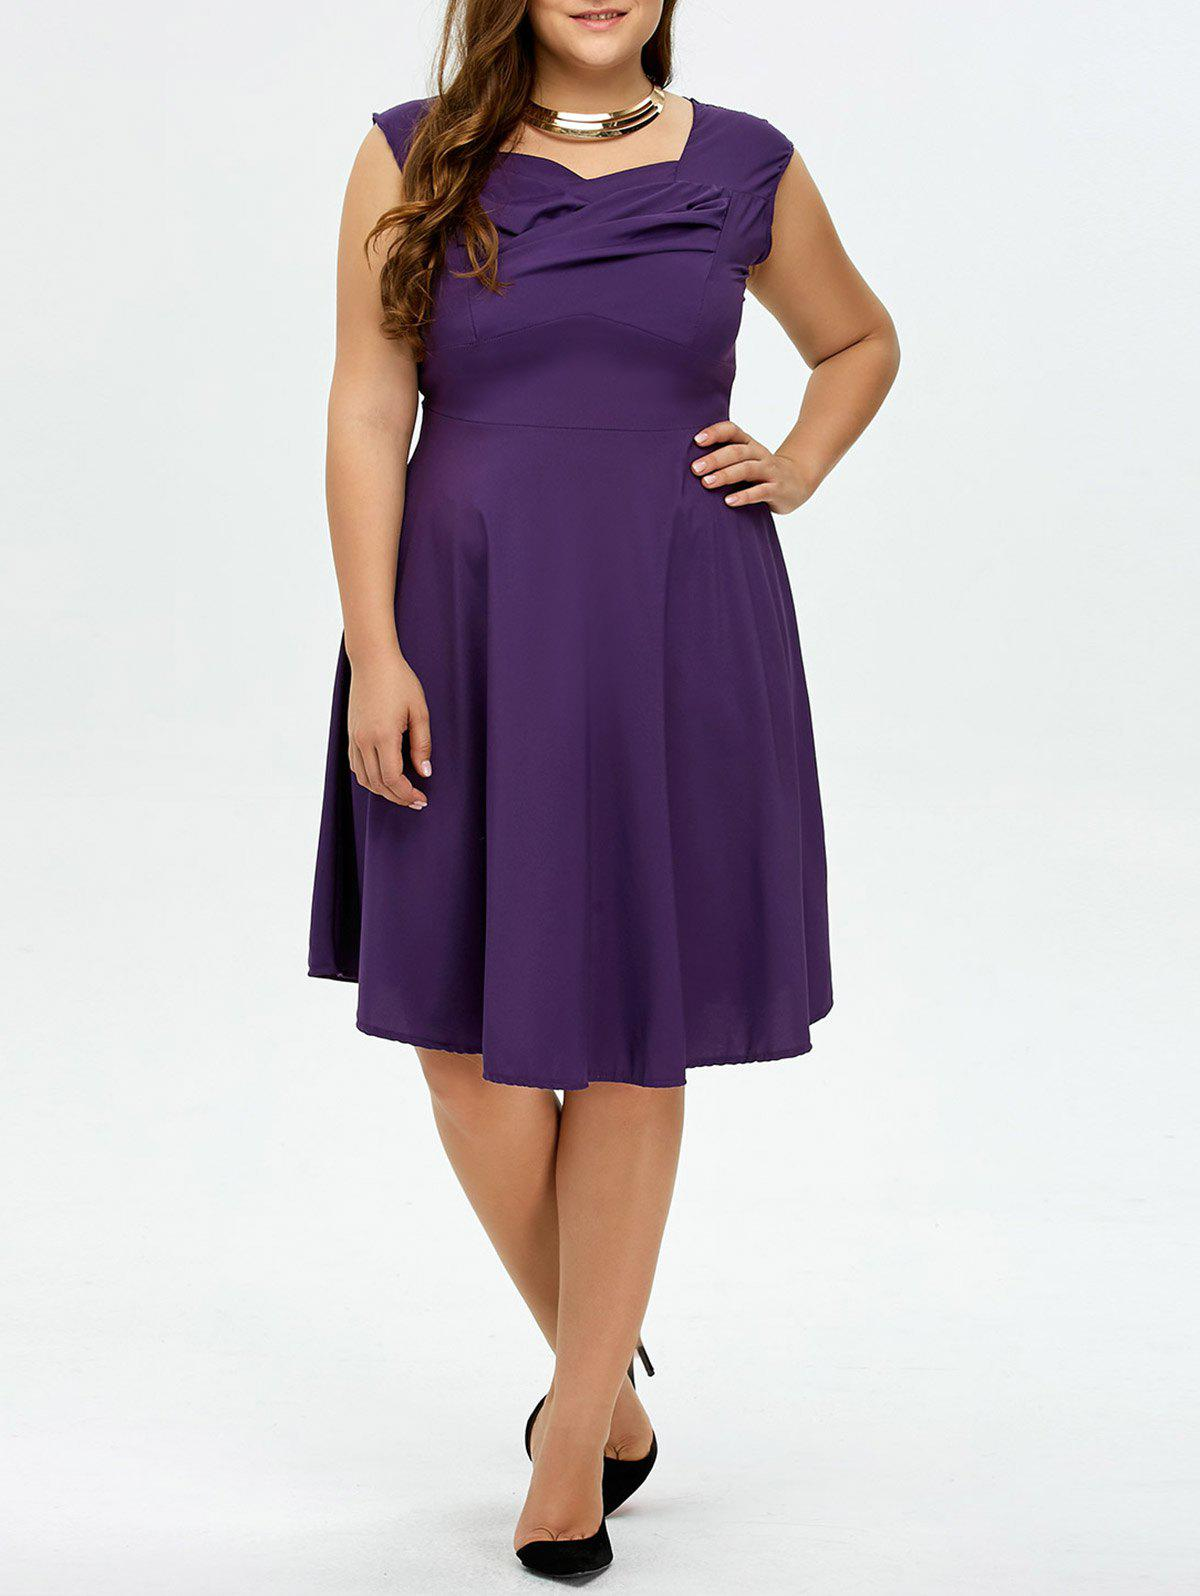 453a5be2e796 2018 Plus Size Vintage Ruched Swing Dress In Deep Purple 4xl ...